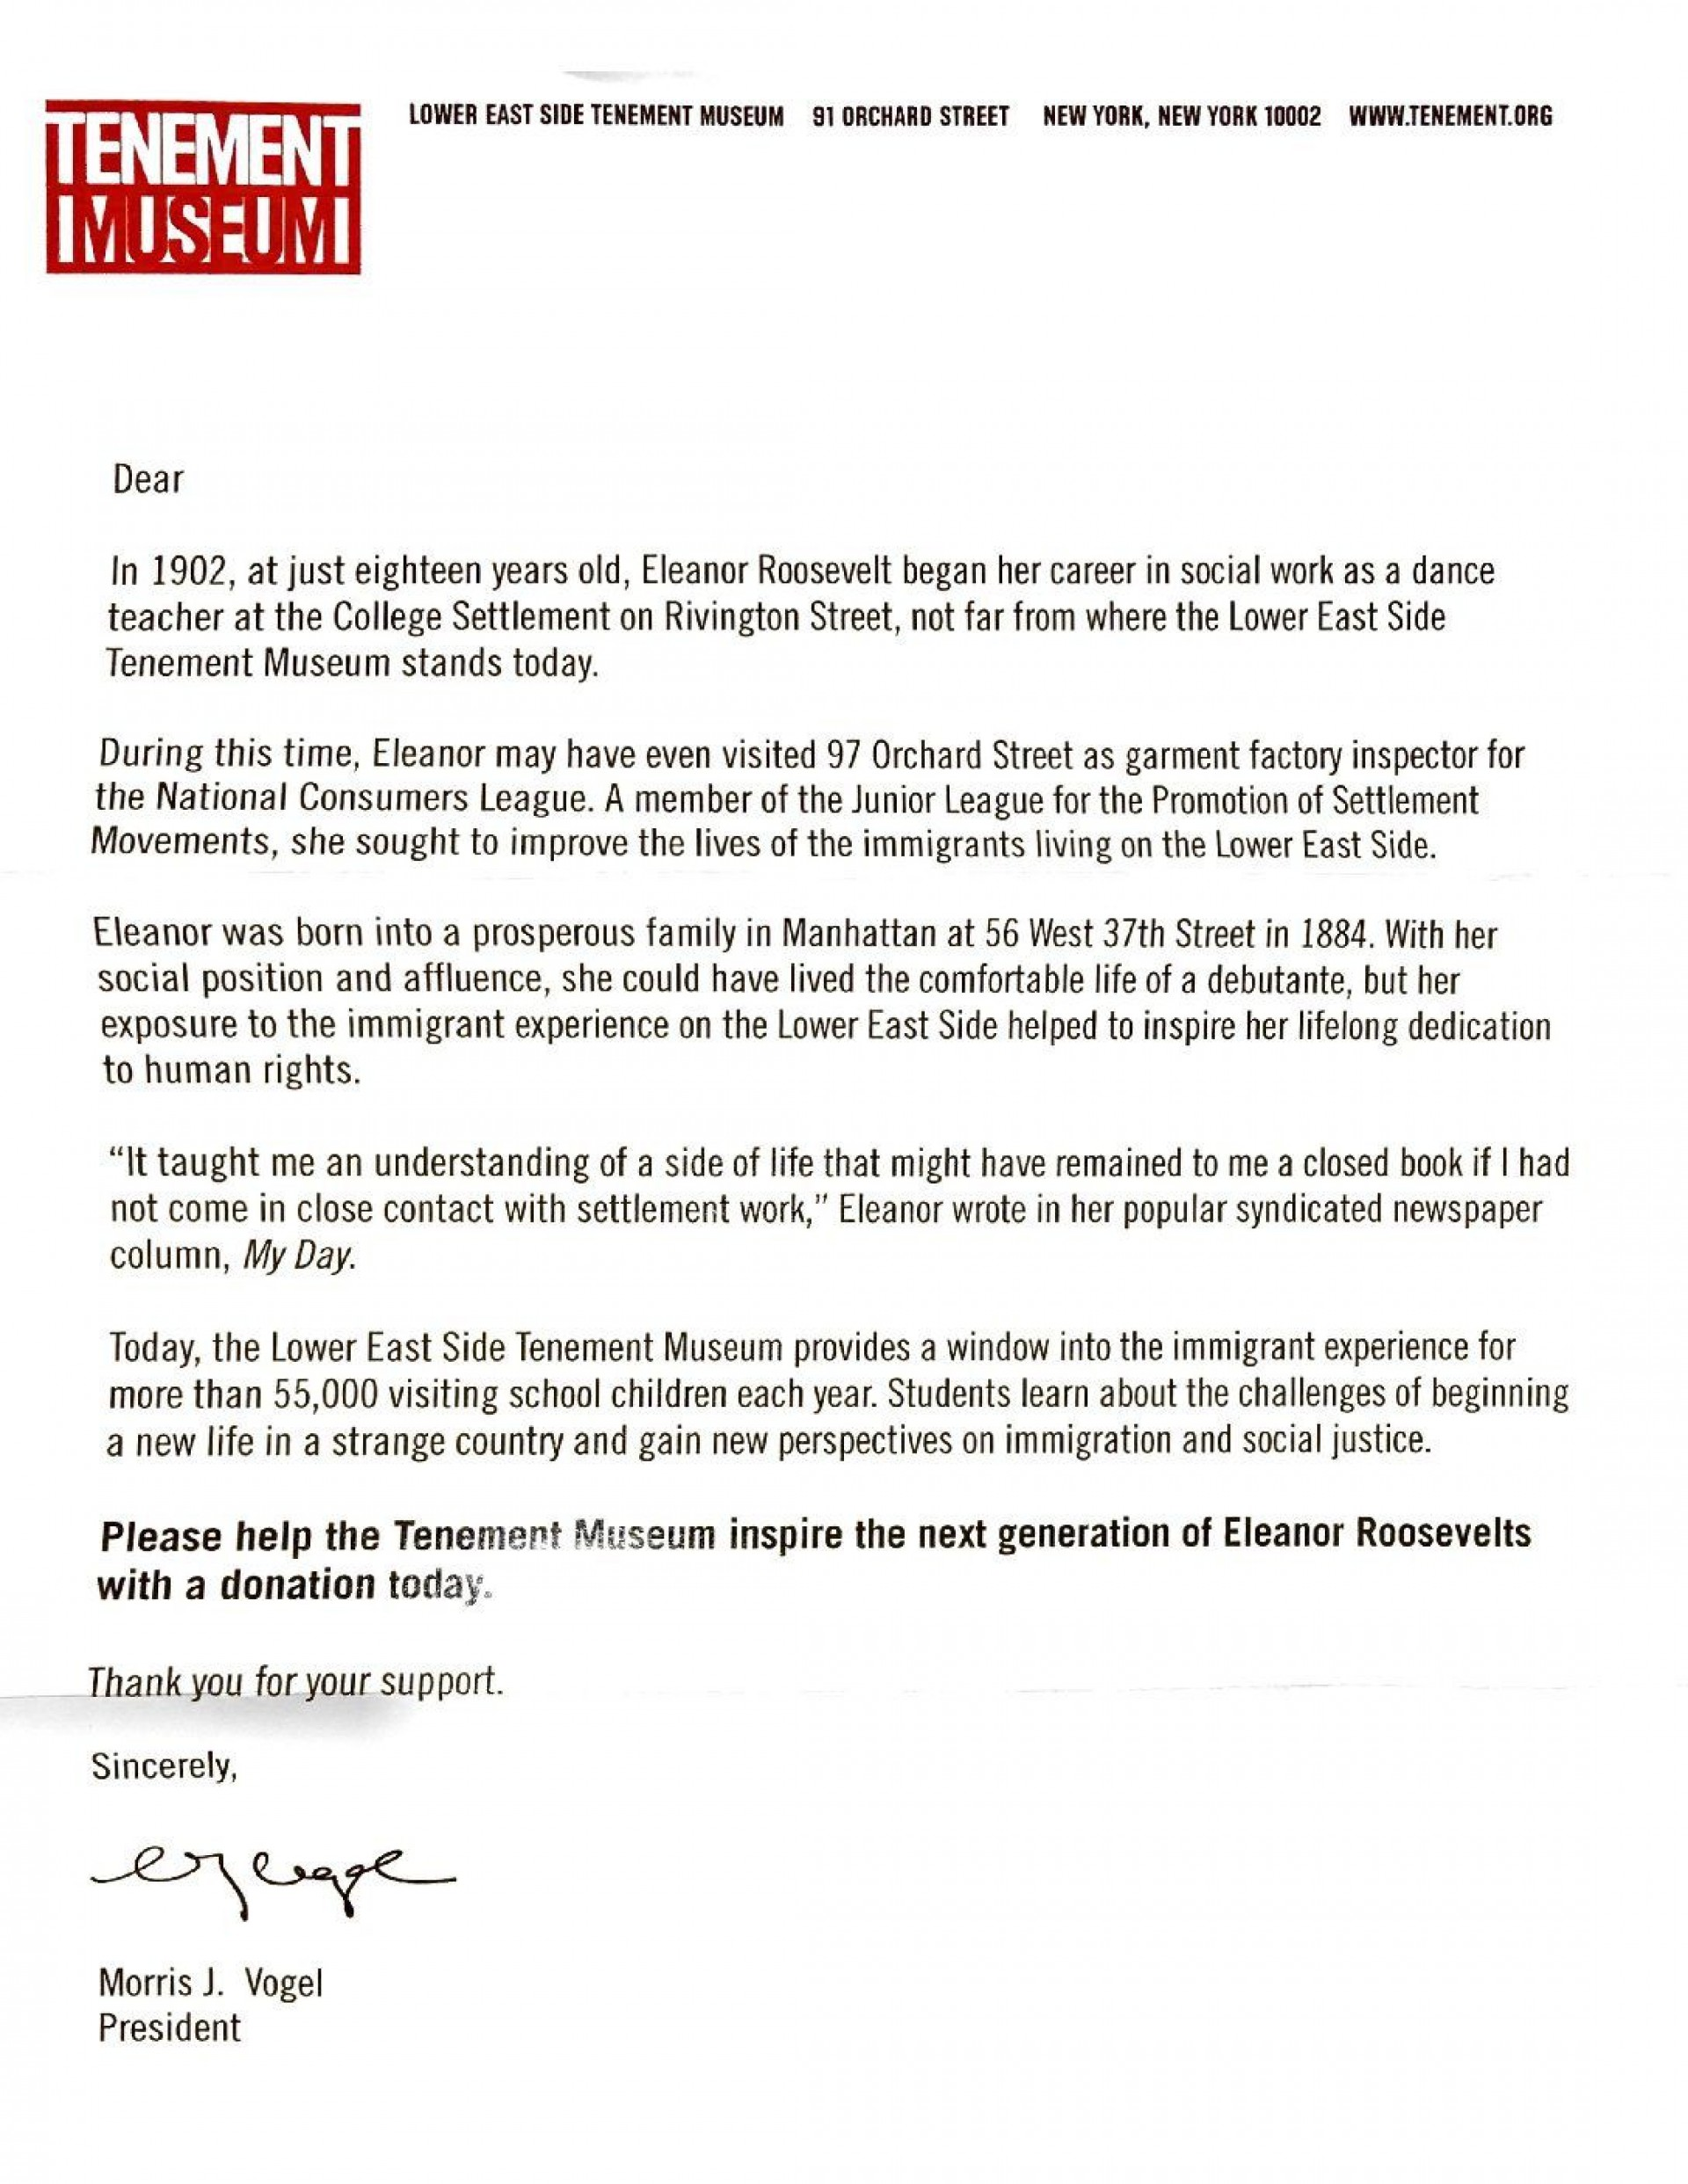 009 Best Fund Raising Letter Template Concept  Templates Example Of Fundraising Appeal For Mission Trip Uk1920